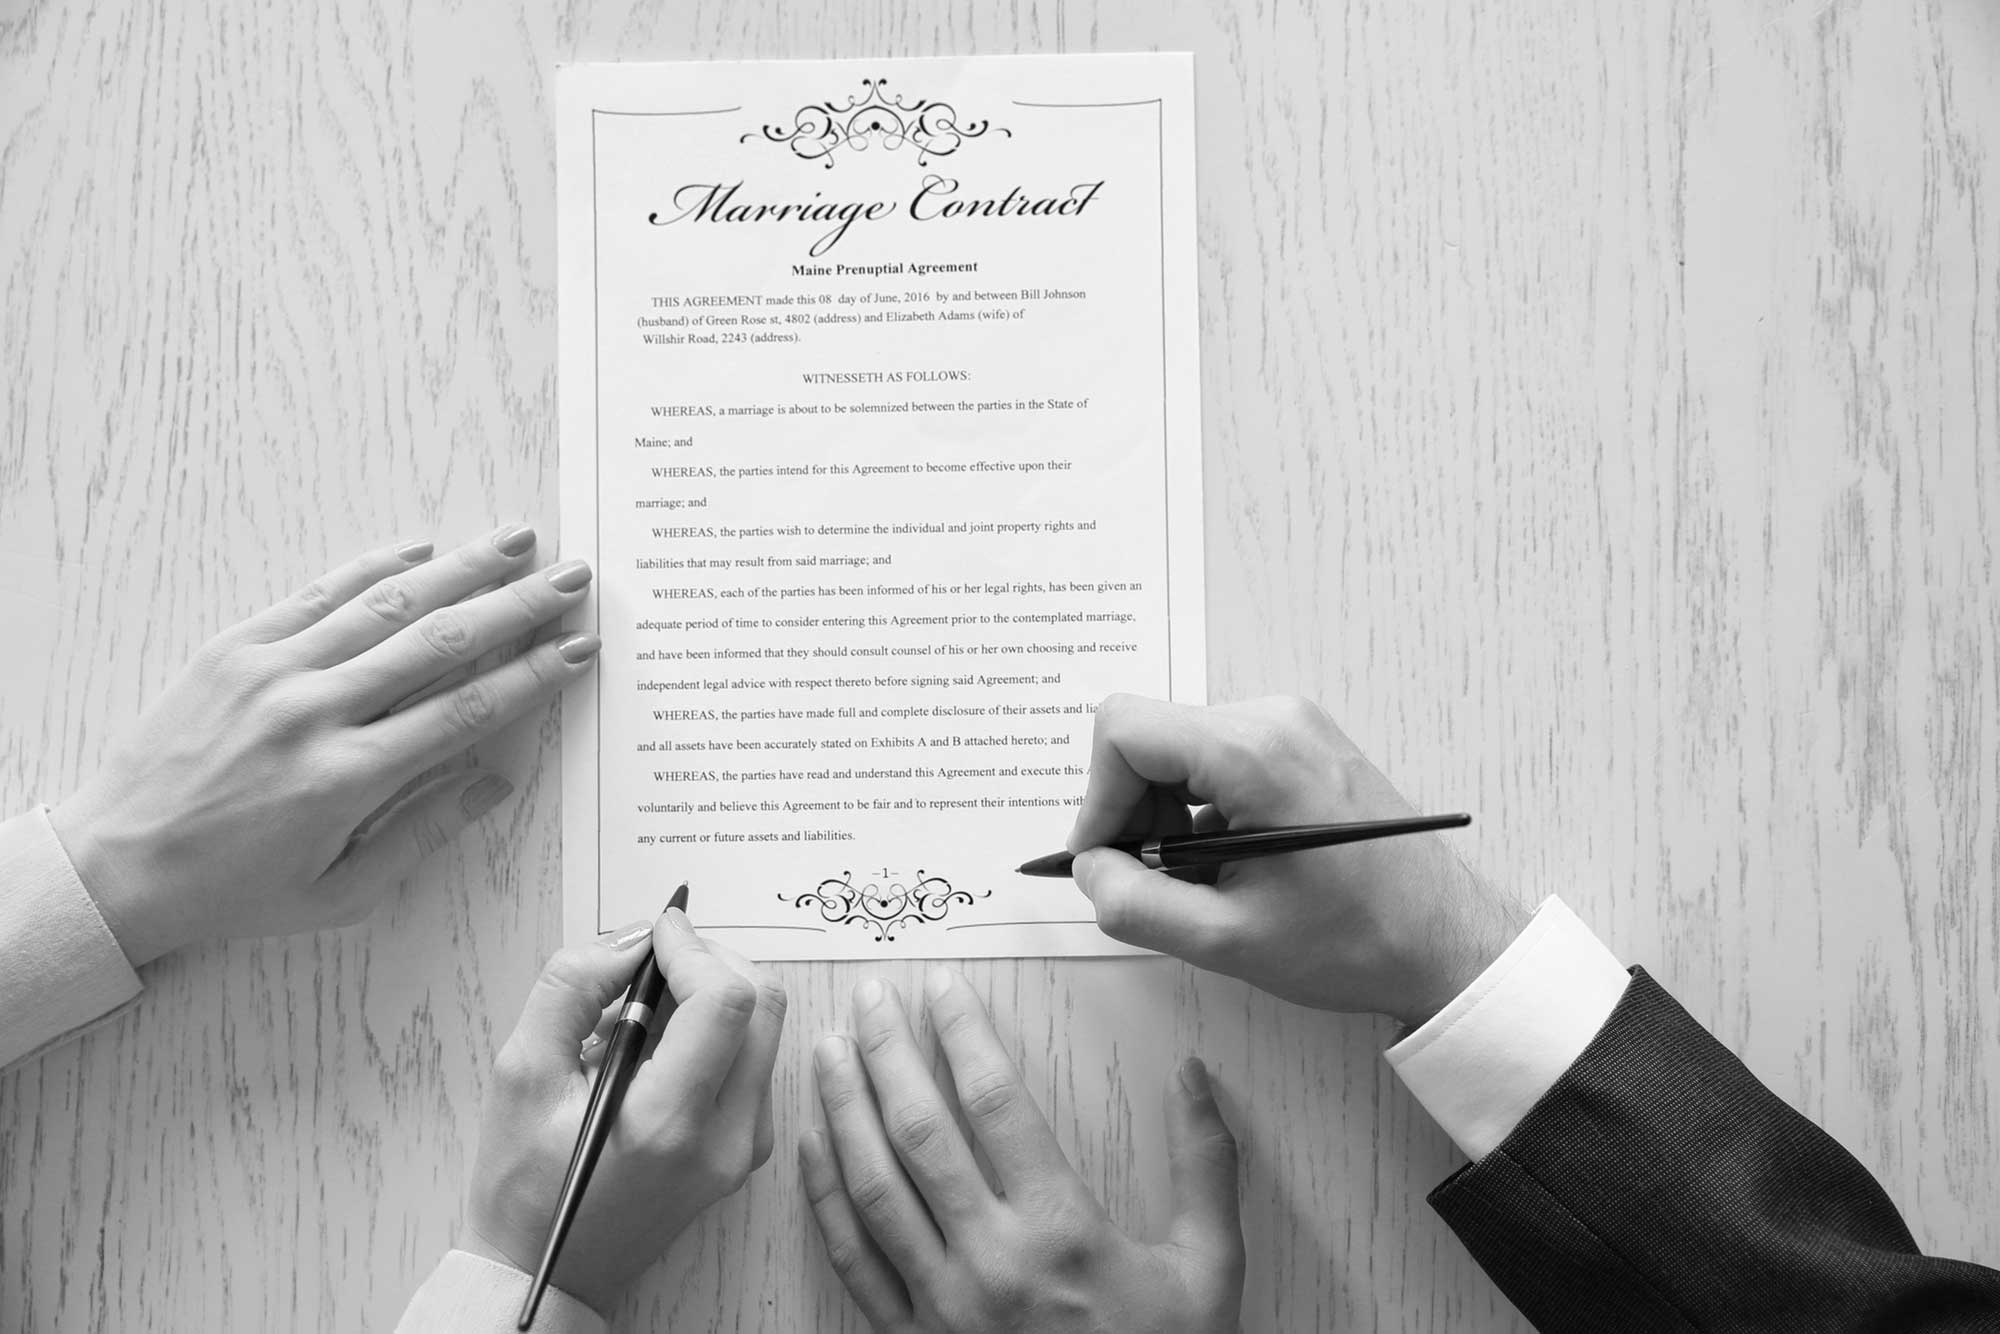 Image of two people signing a Prenup